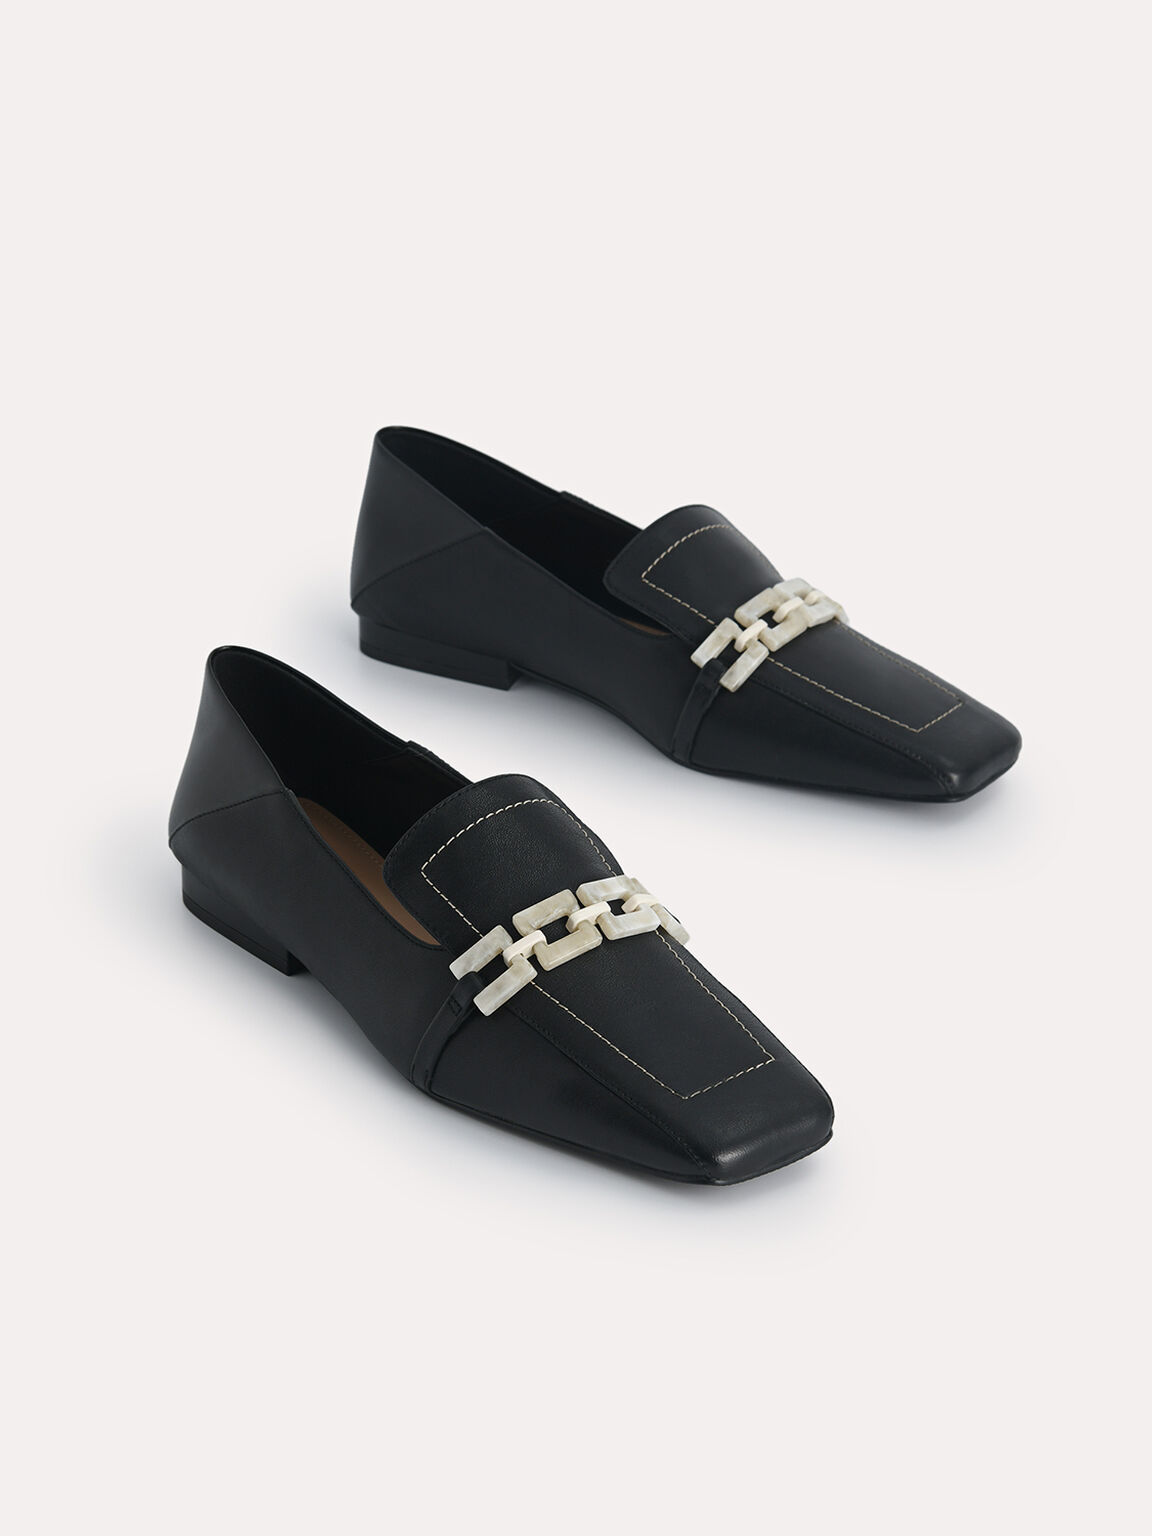 Leather Square Toe Loafers, Black, hi-res